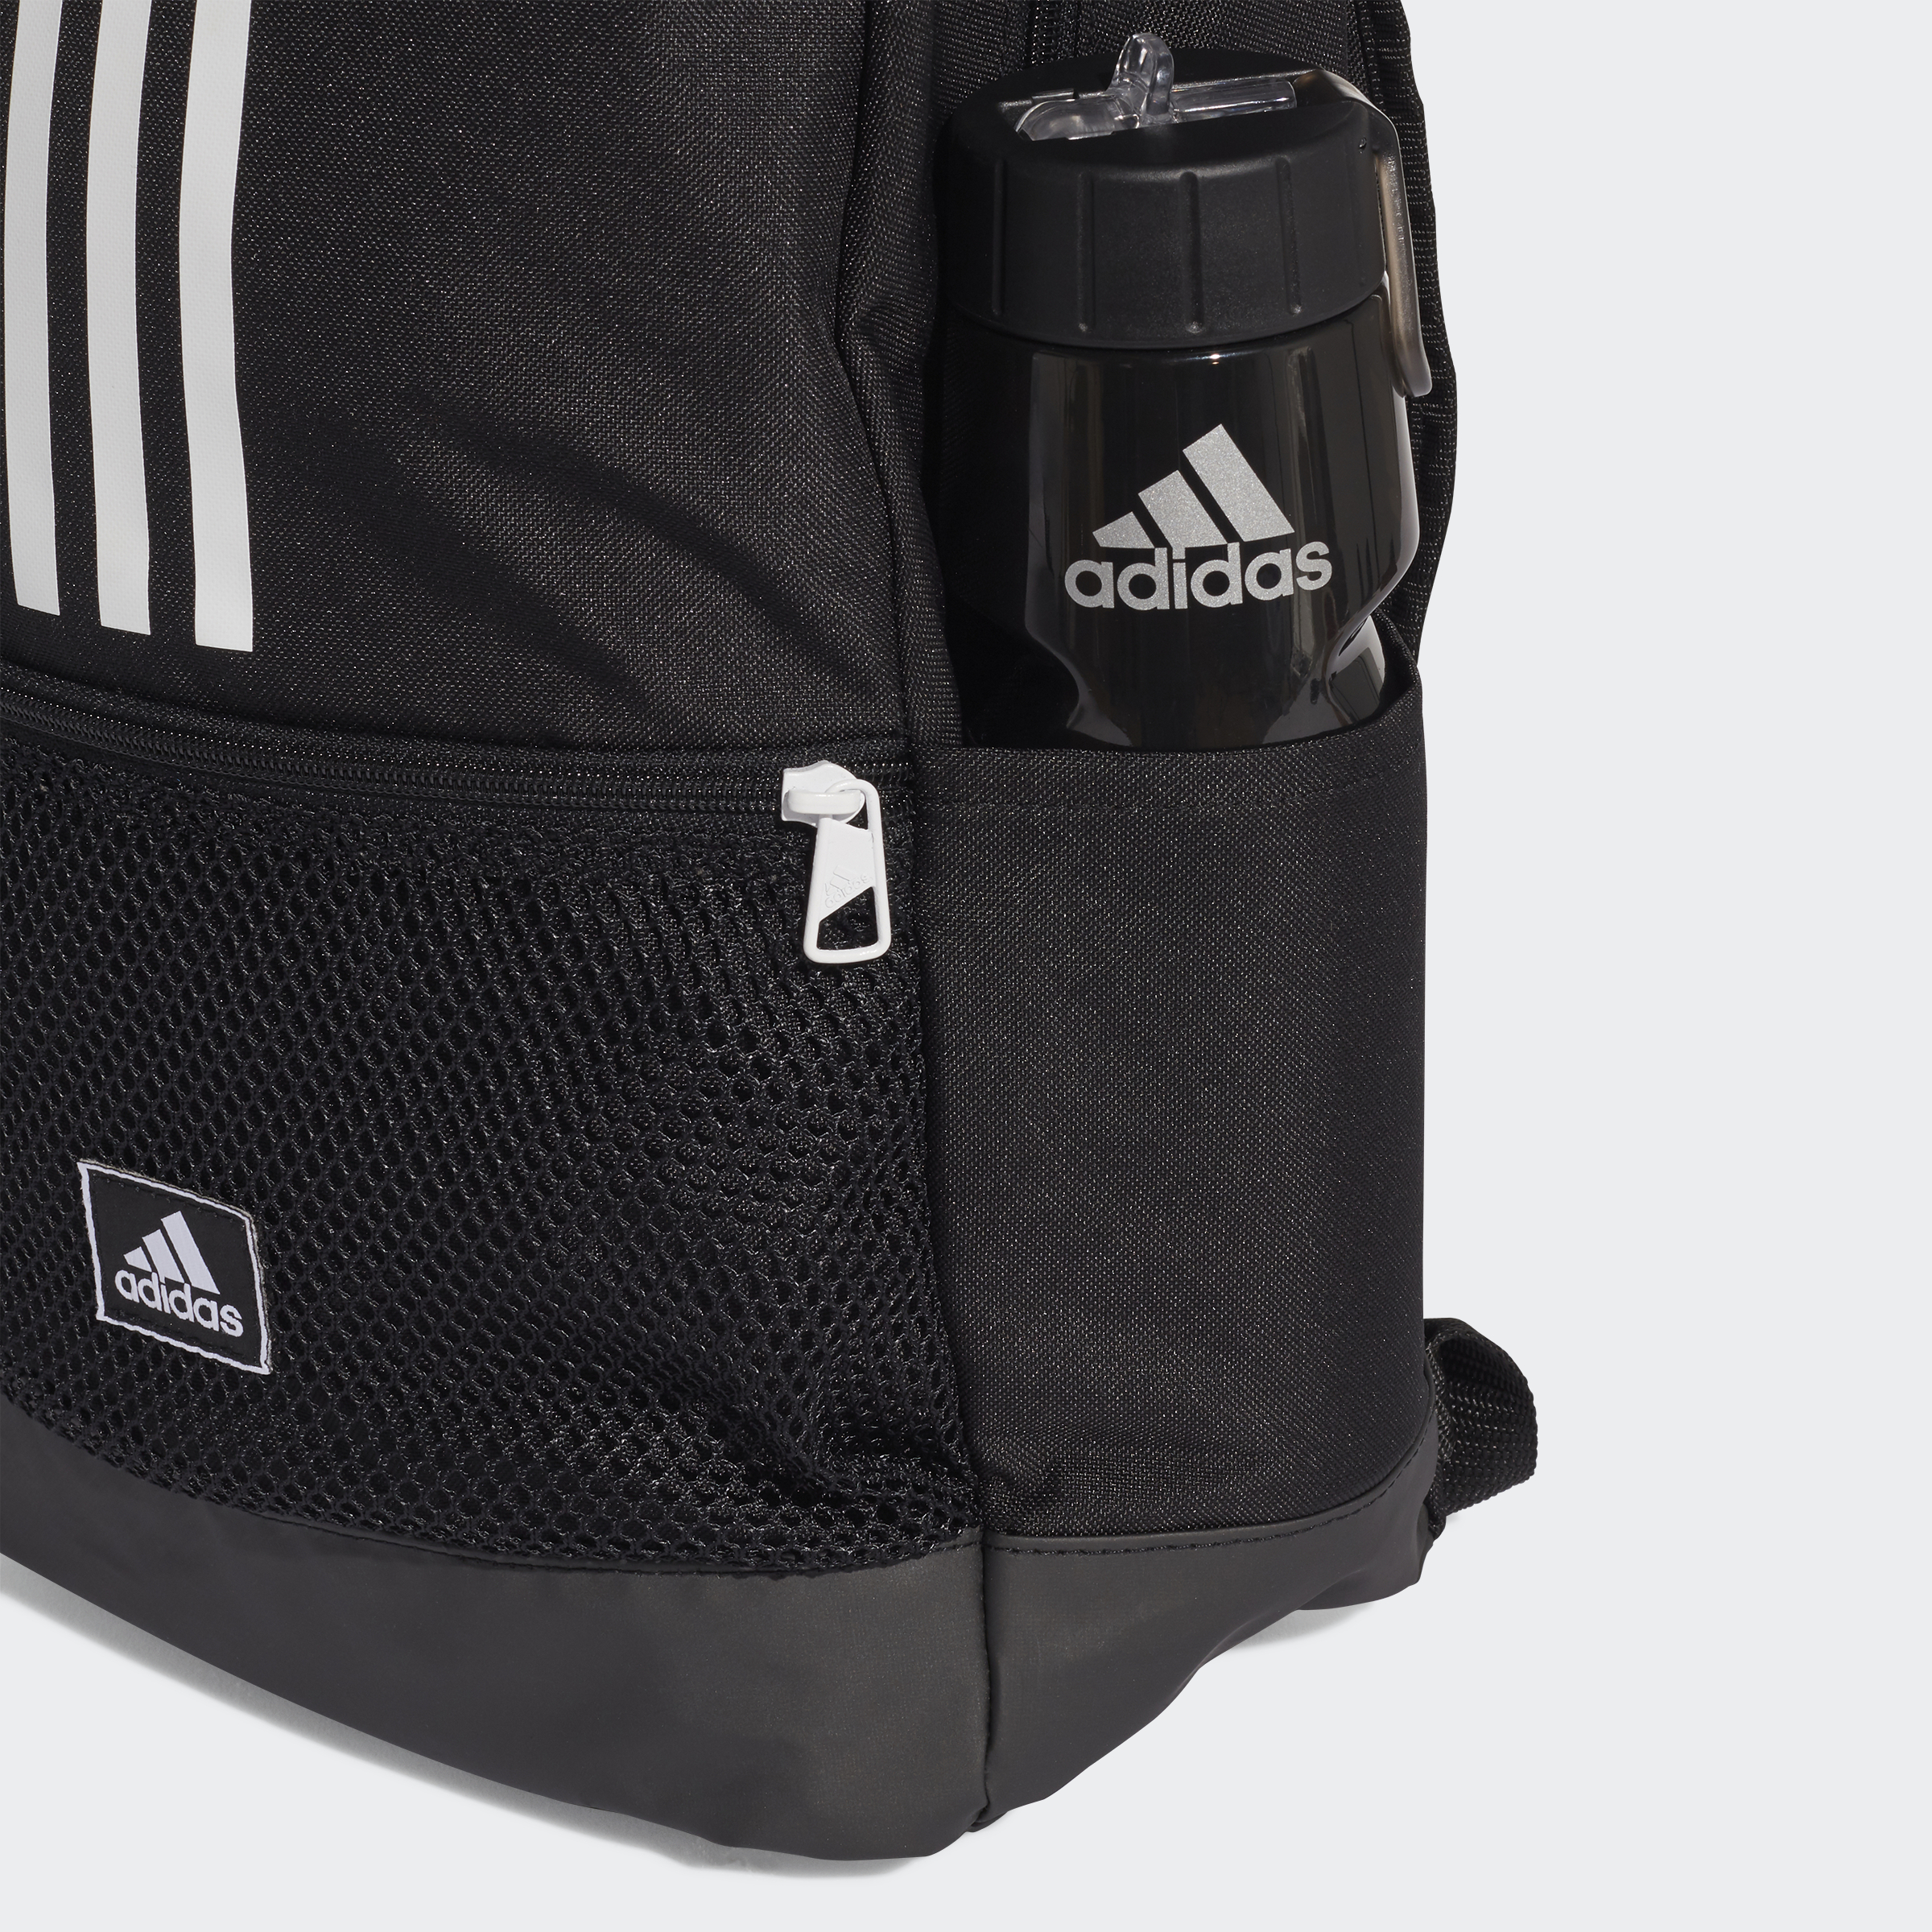 adidas-Classic-3-Stripes-Backpack-Bags thumbnail 11